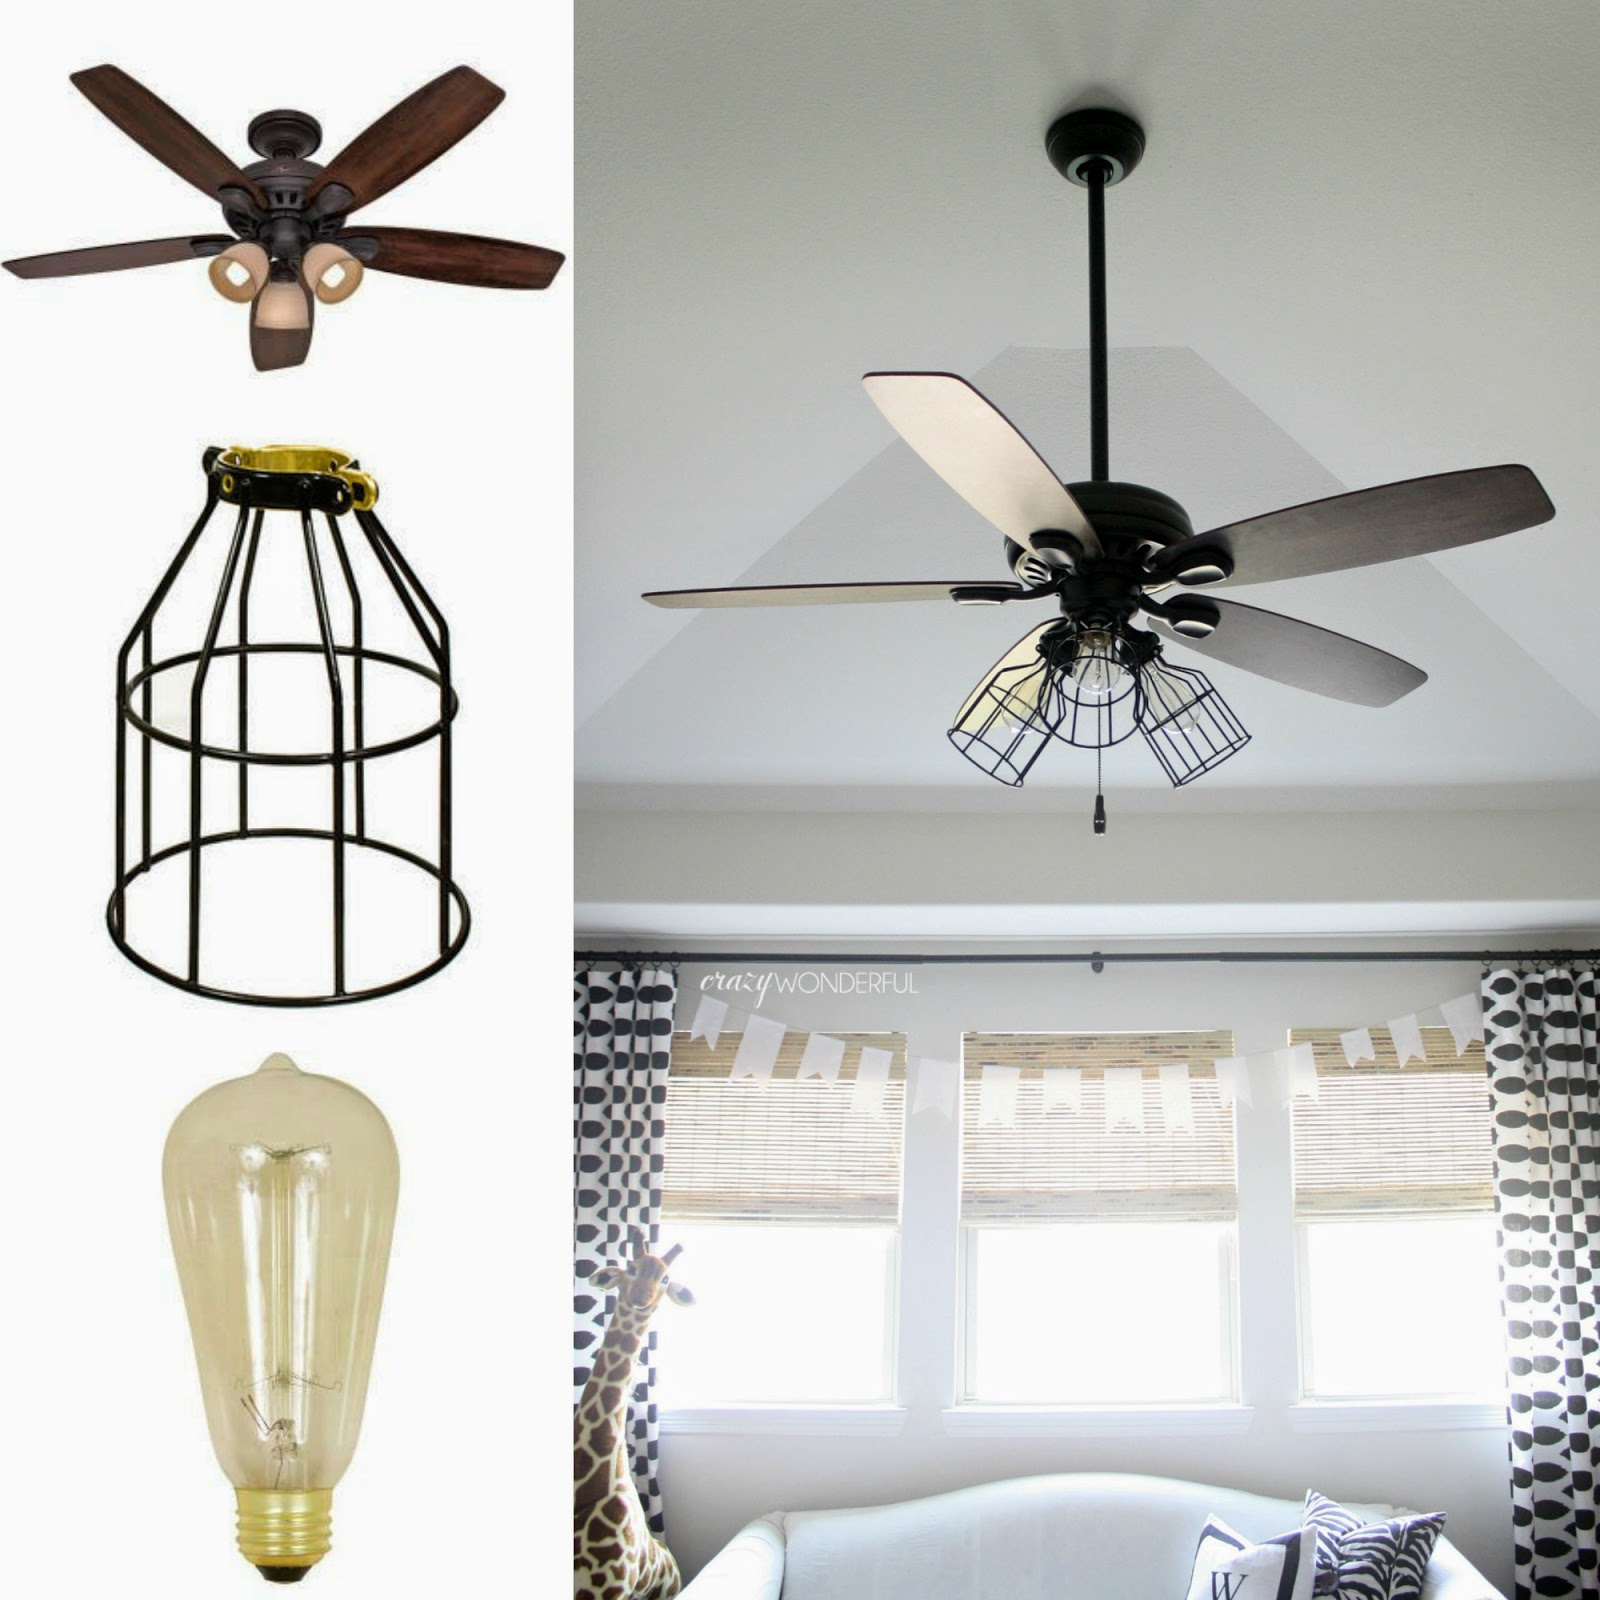 DIY Cage Light Ceiling Fan Crazy Wonderful - White kitchen ceiling fan with light